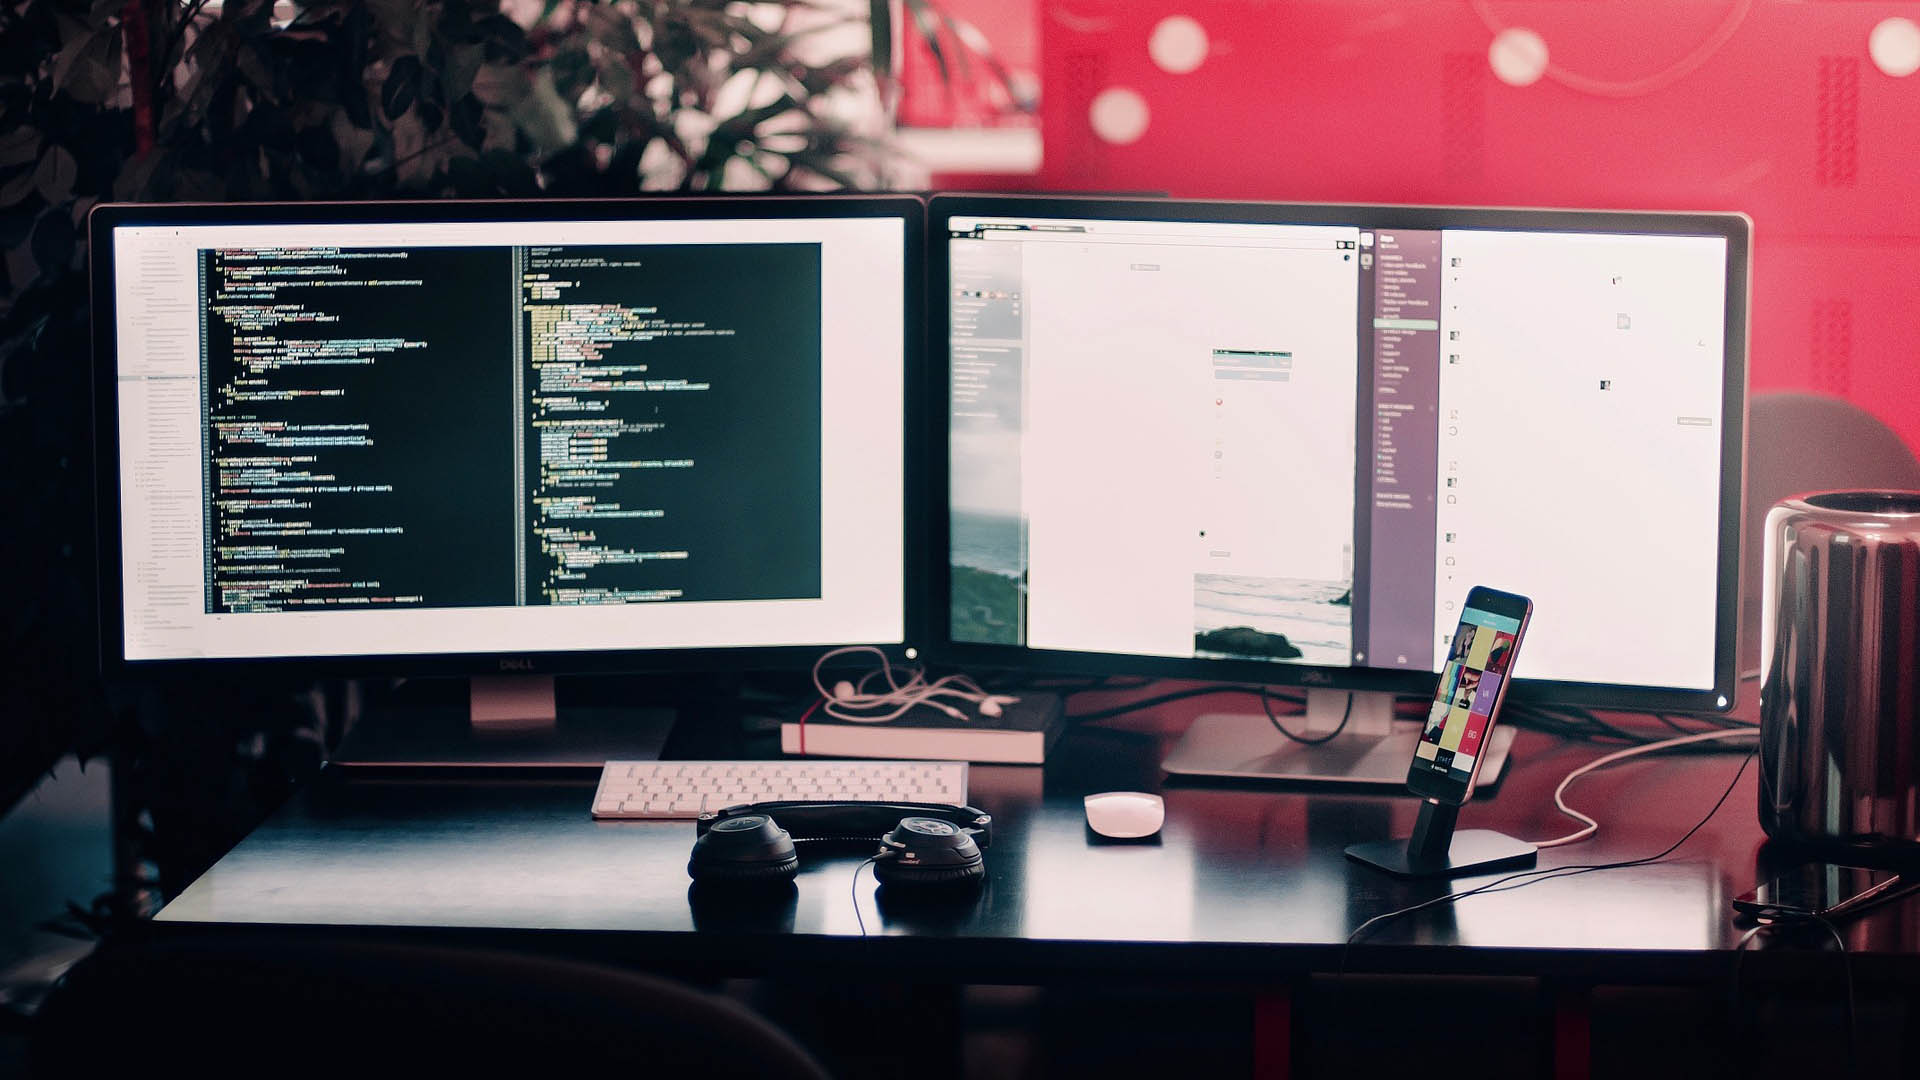 Producing a custom software requires the right expertise, not just in coding but in the appropriate development methodologies